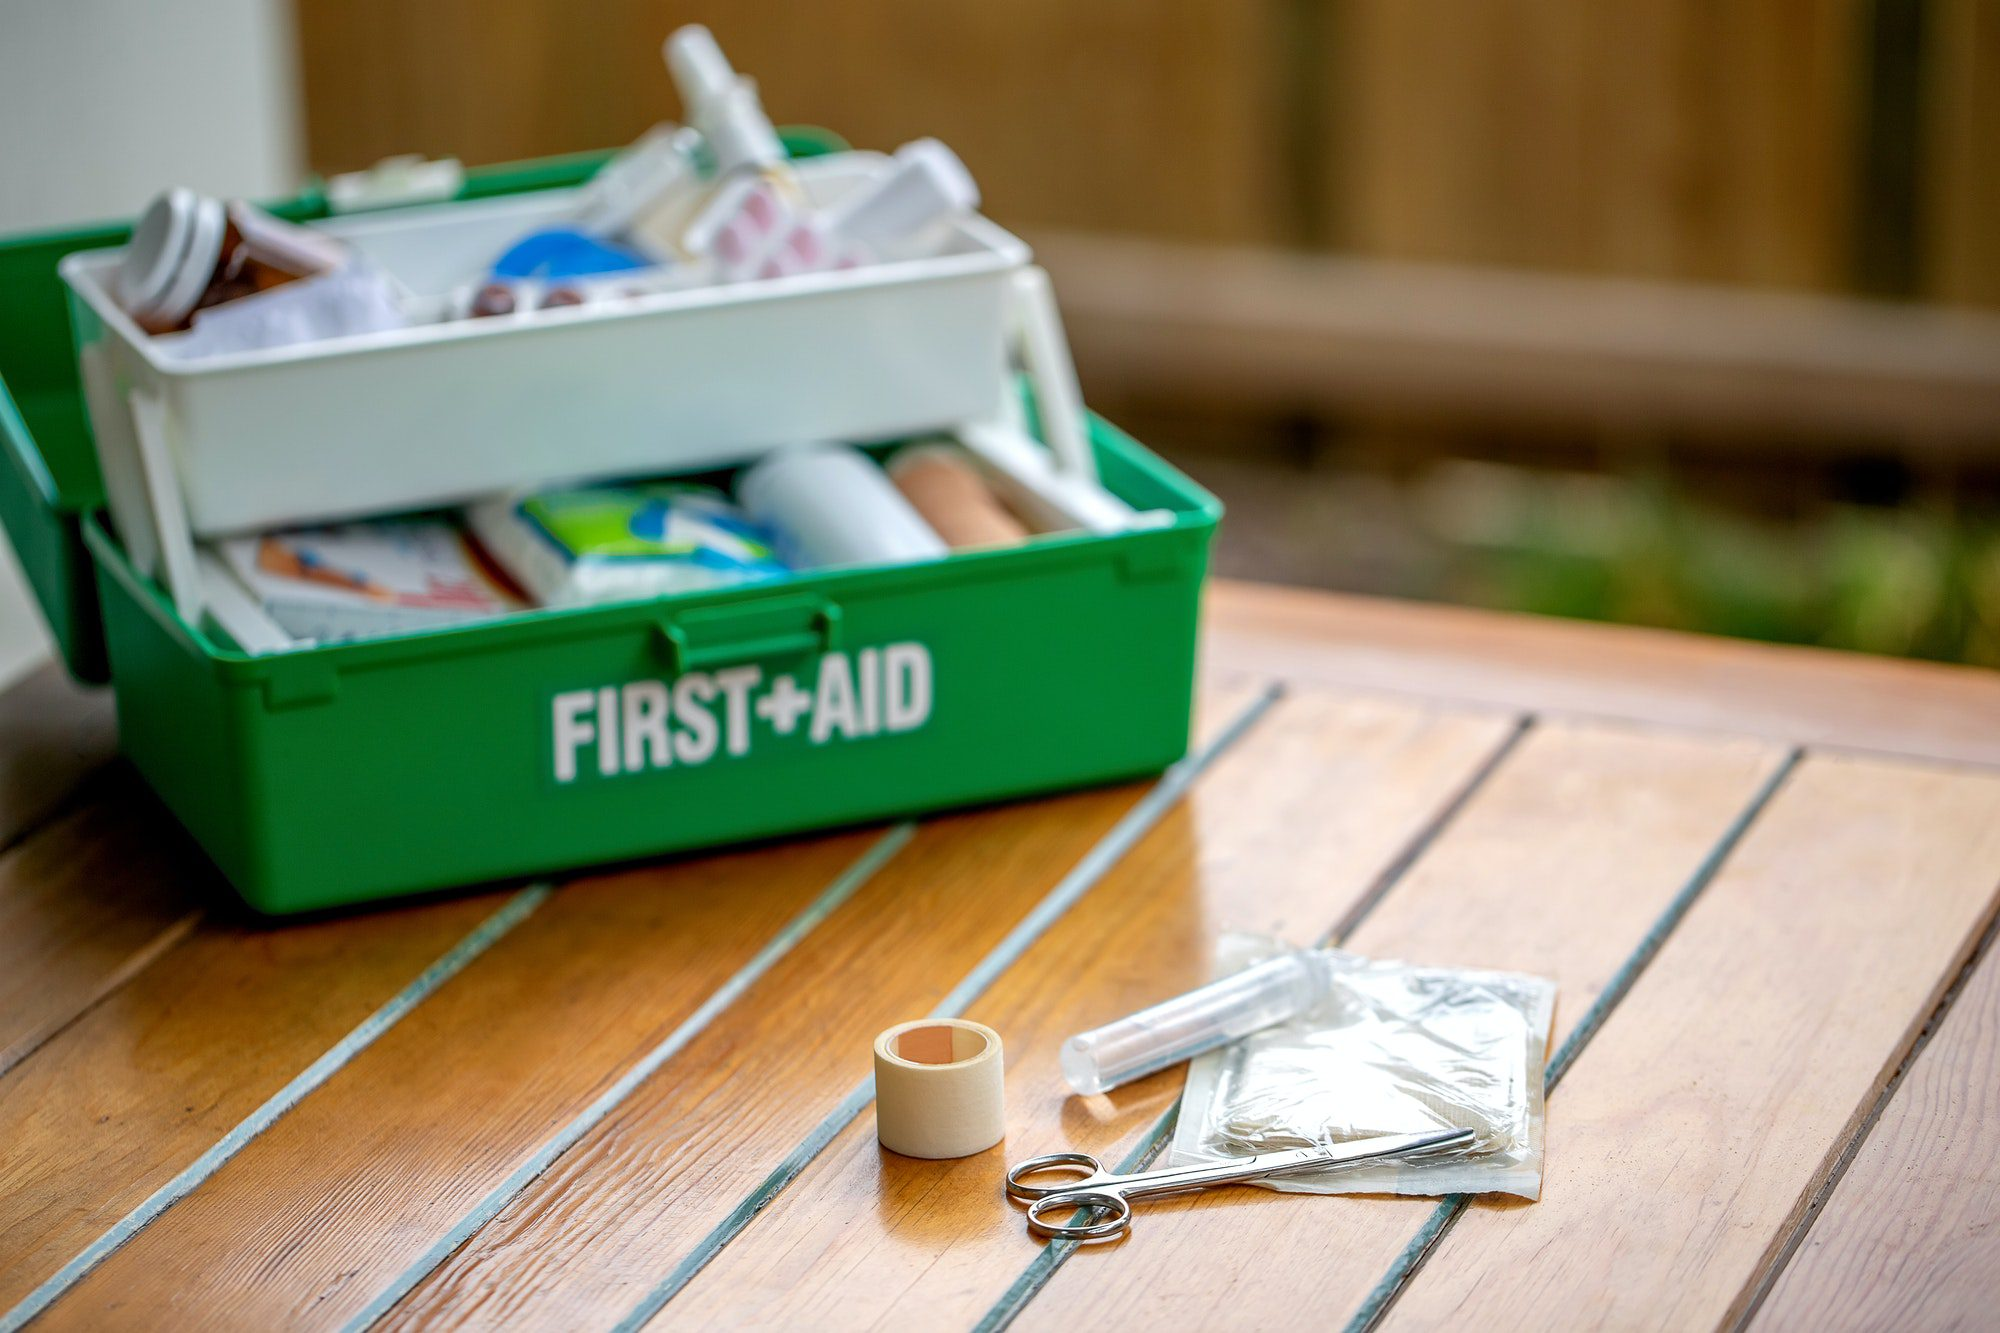 First aid kit on the table